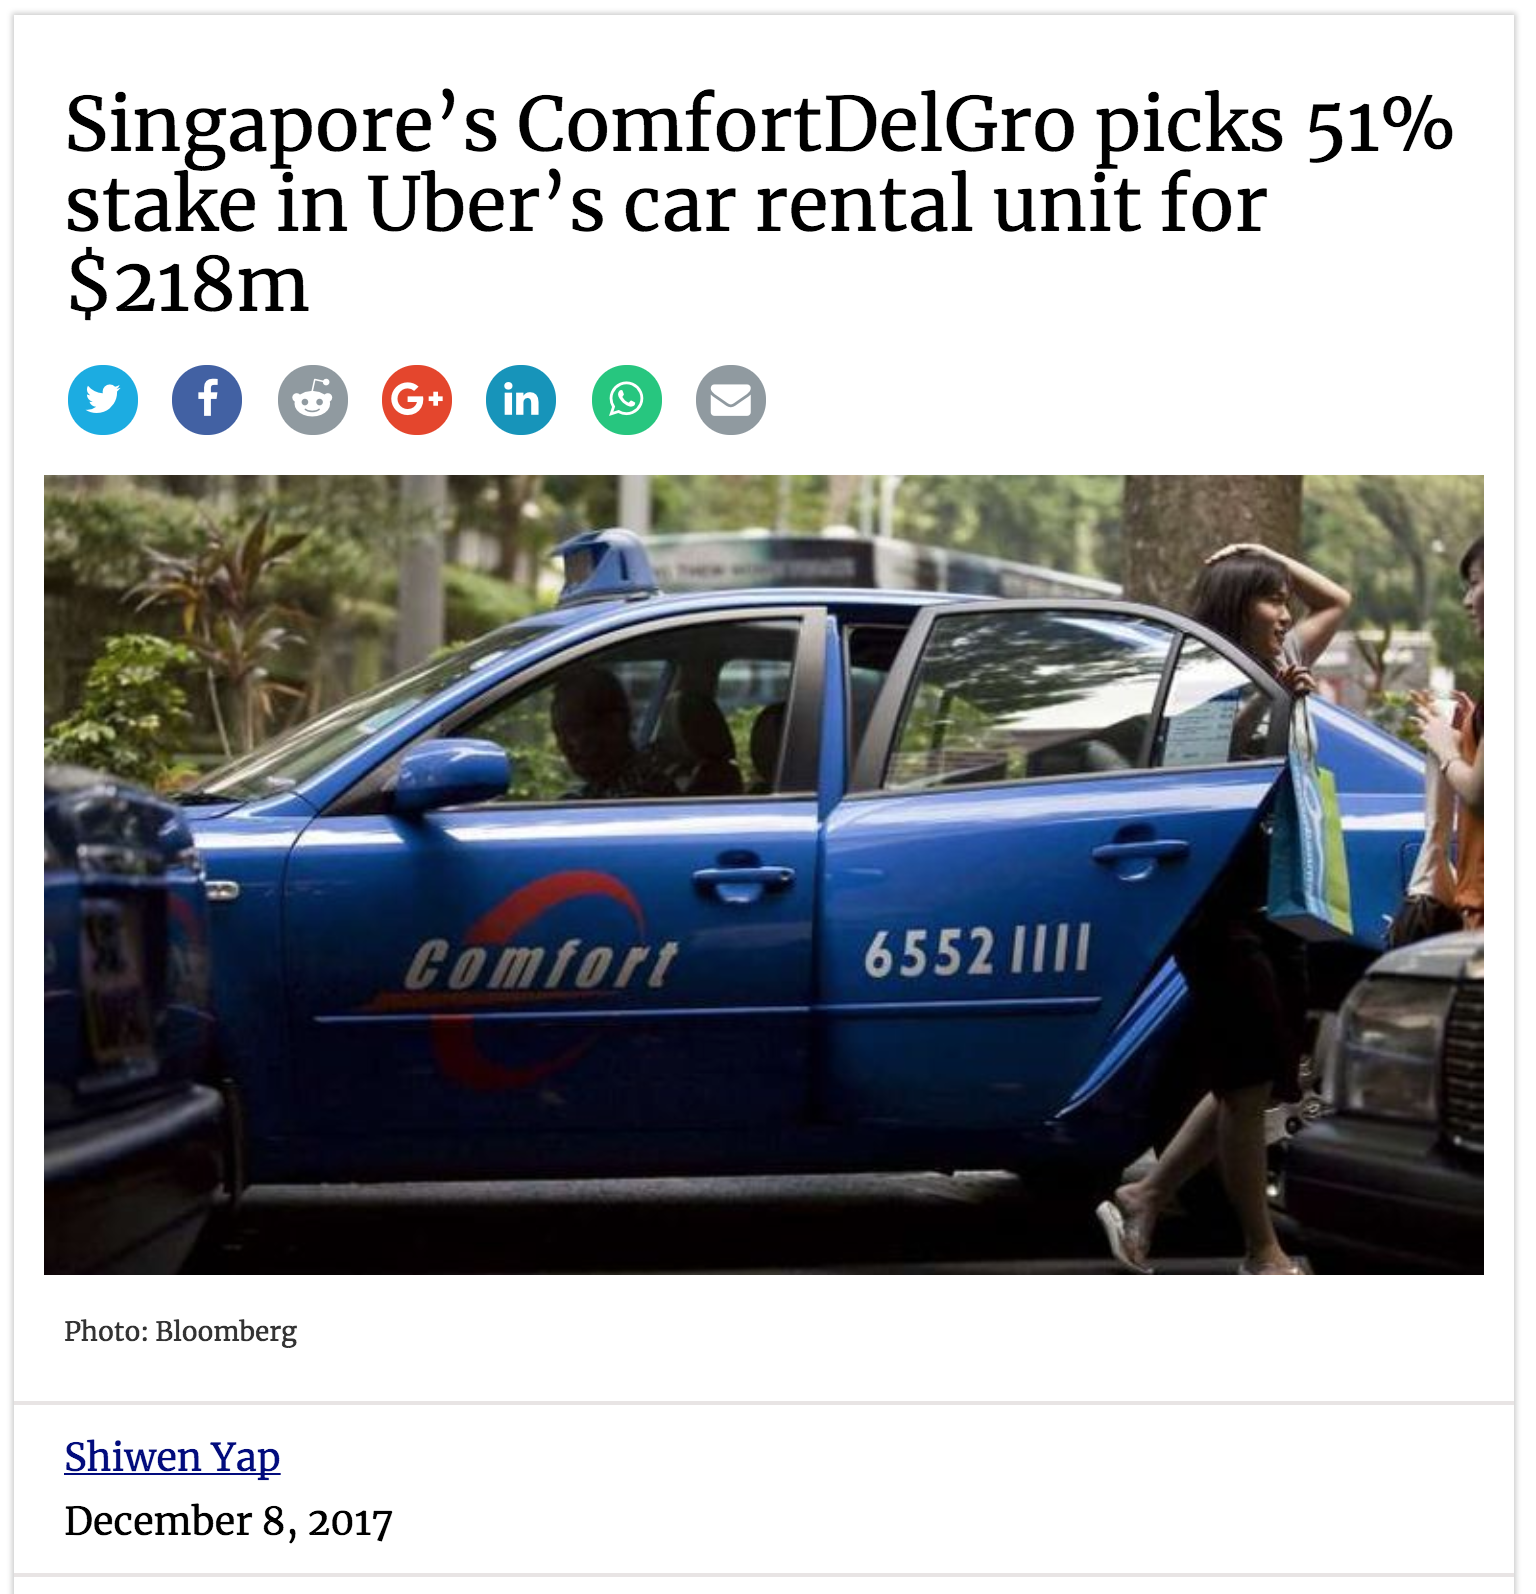 Deal Street Asia On ComfortDelGro Uber JV (08-Dec-2017)